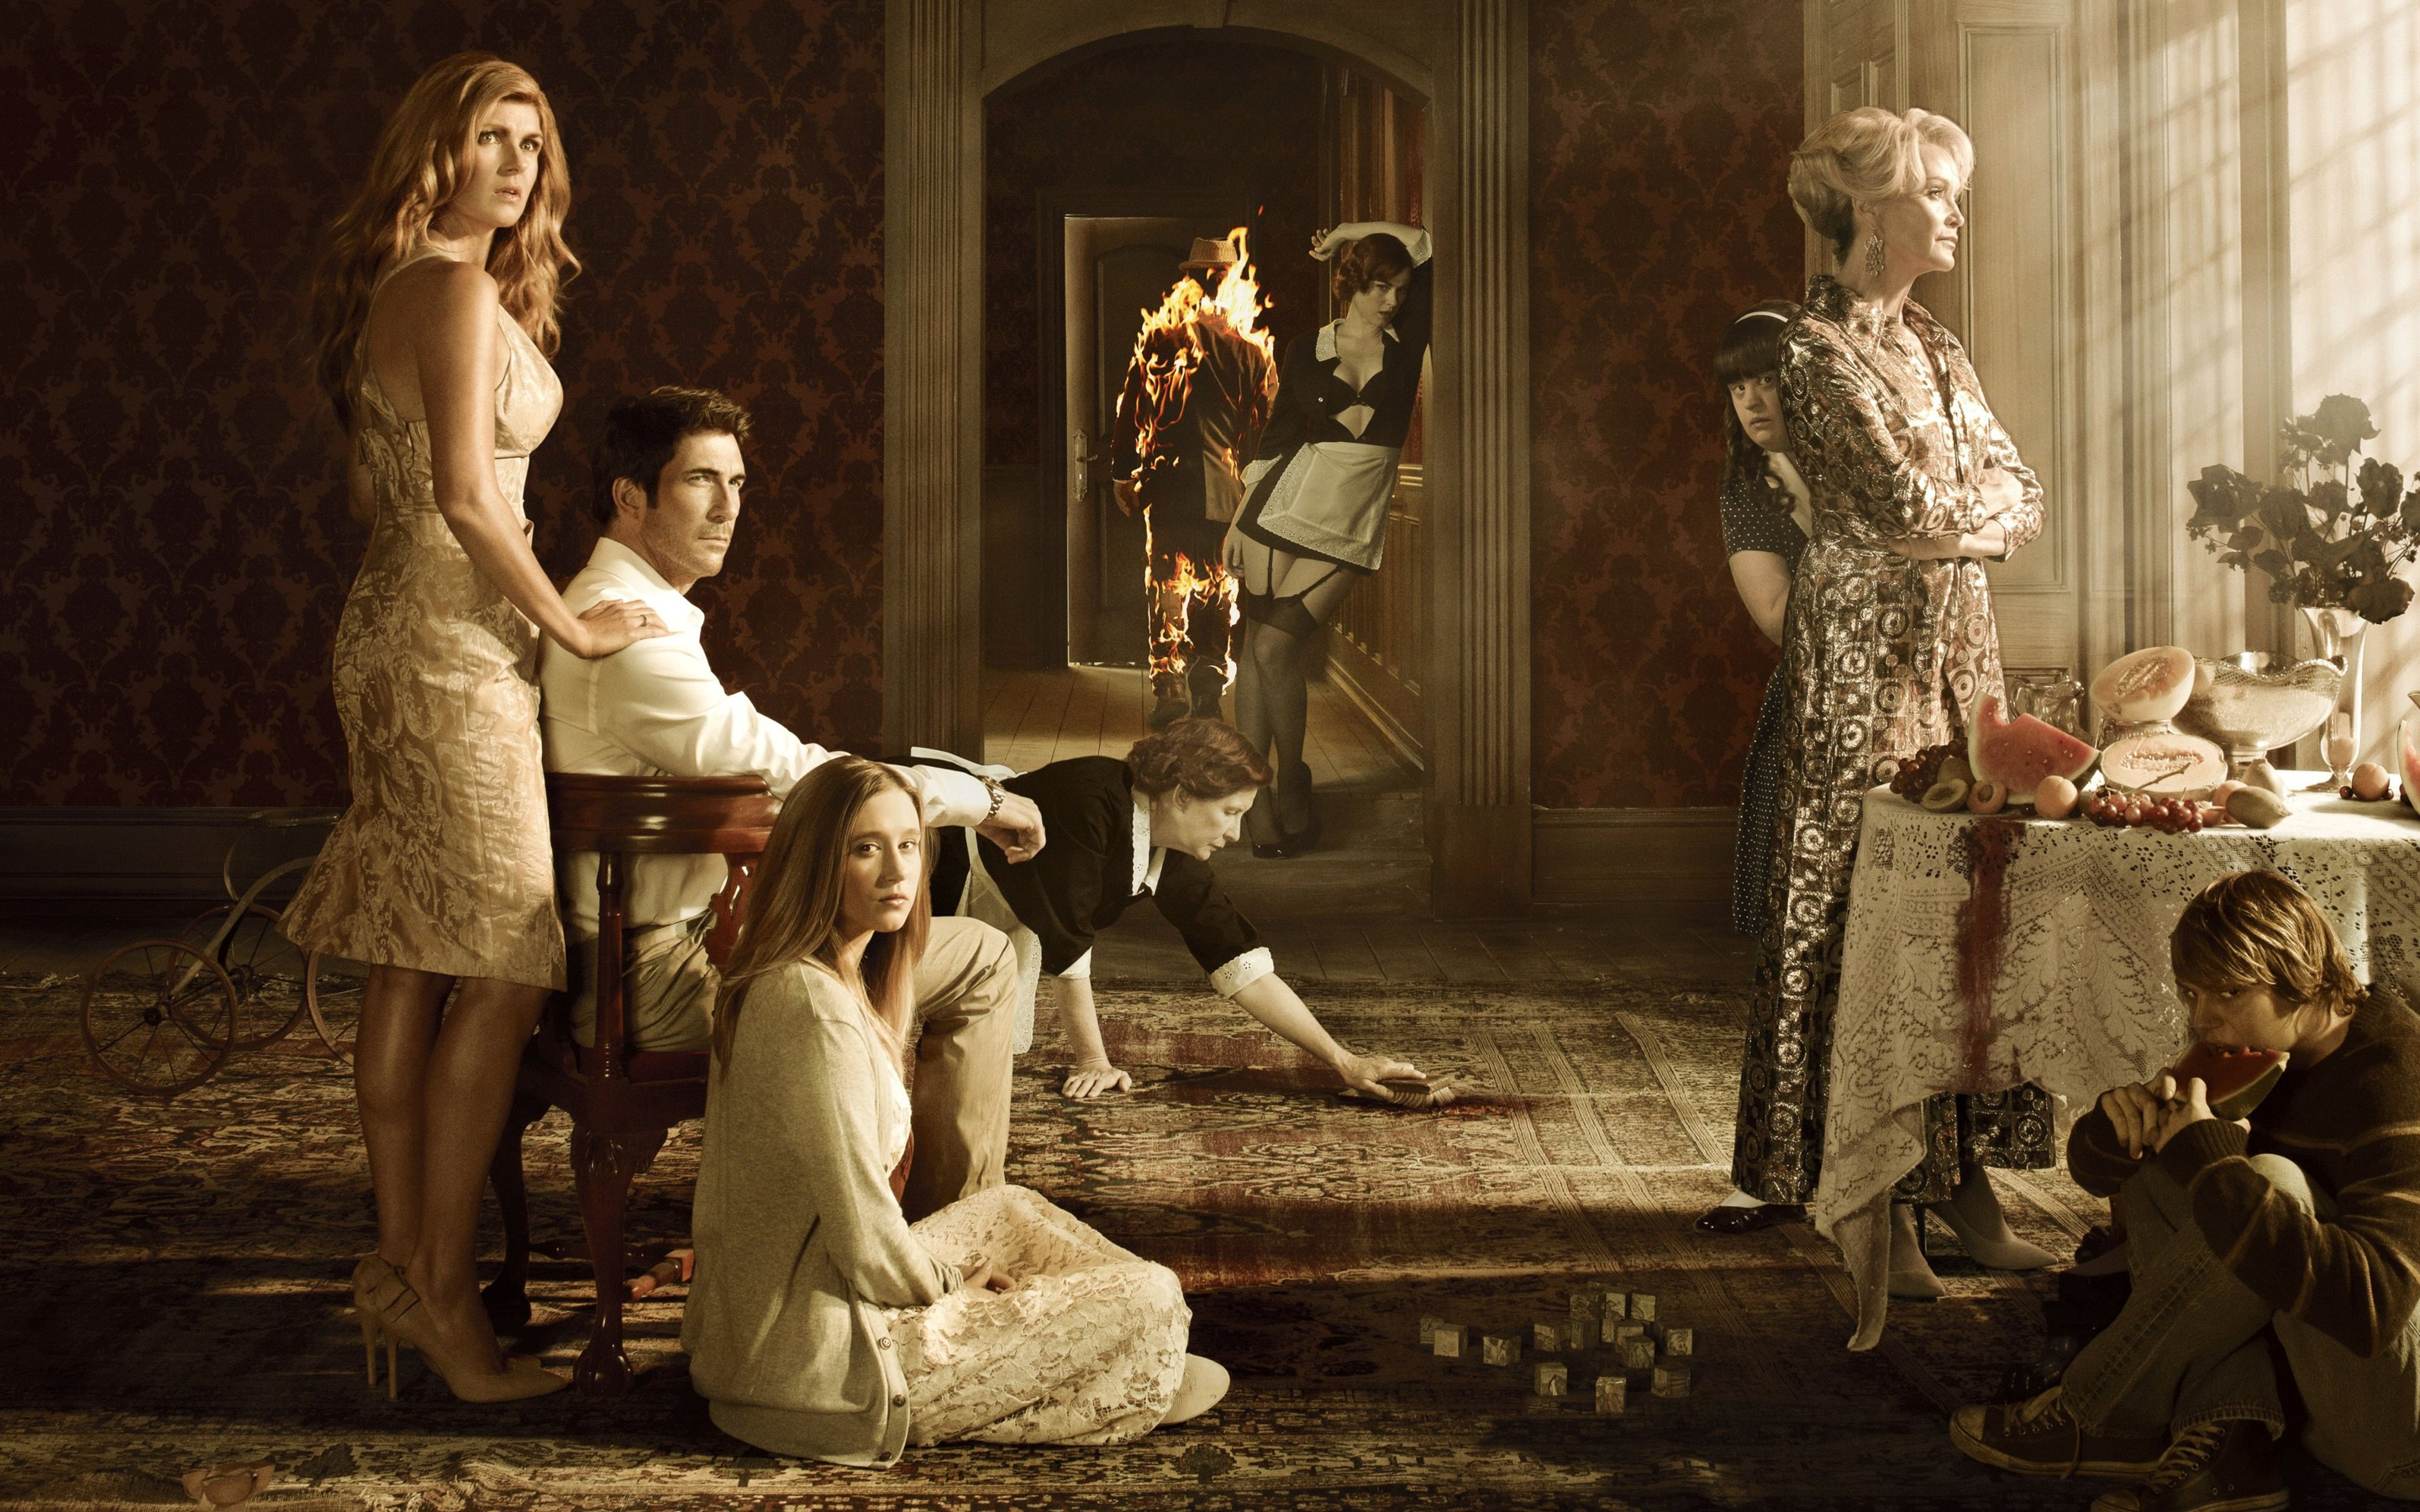 american horror story hd tv shows 4k wallpapers images